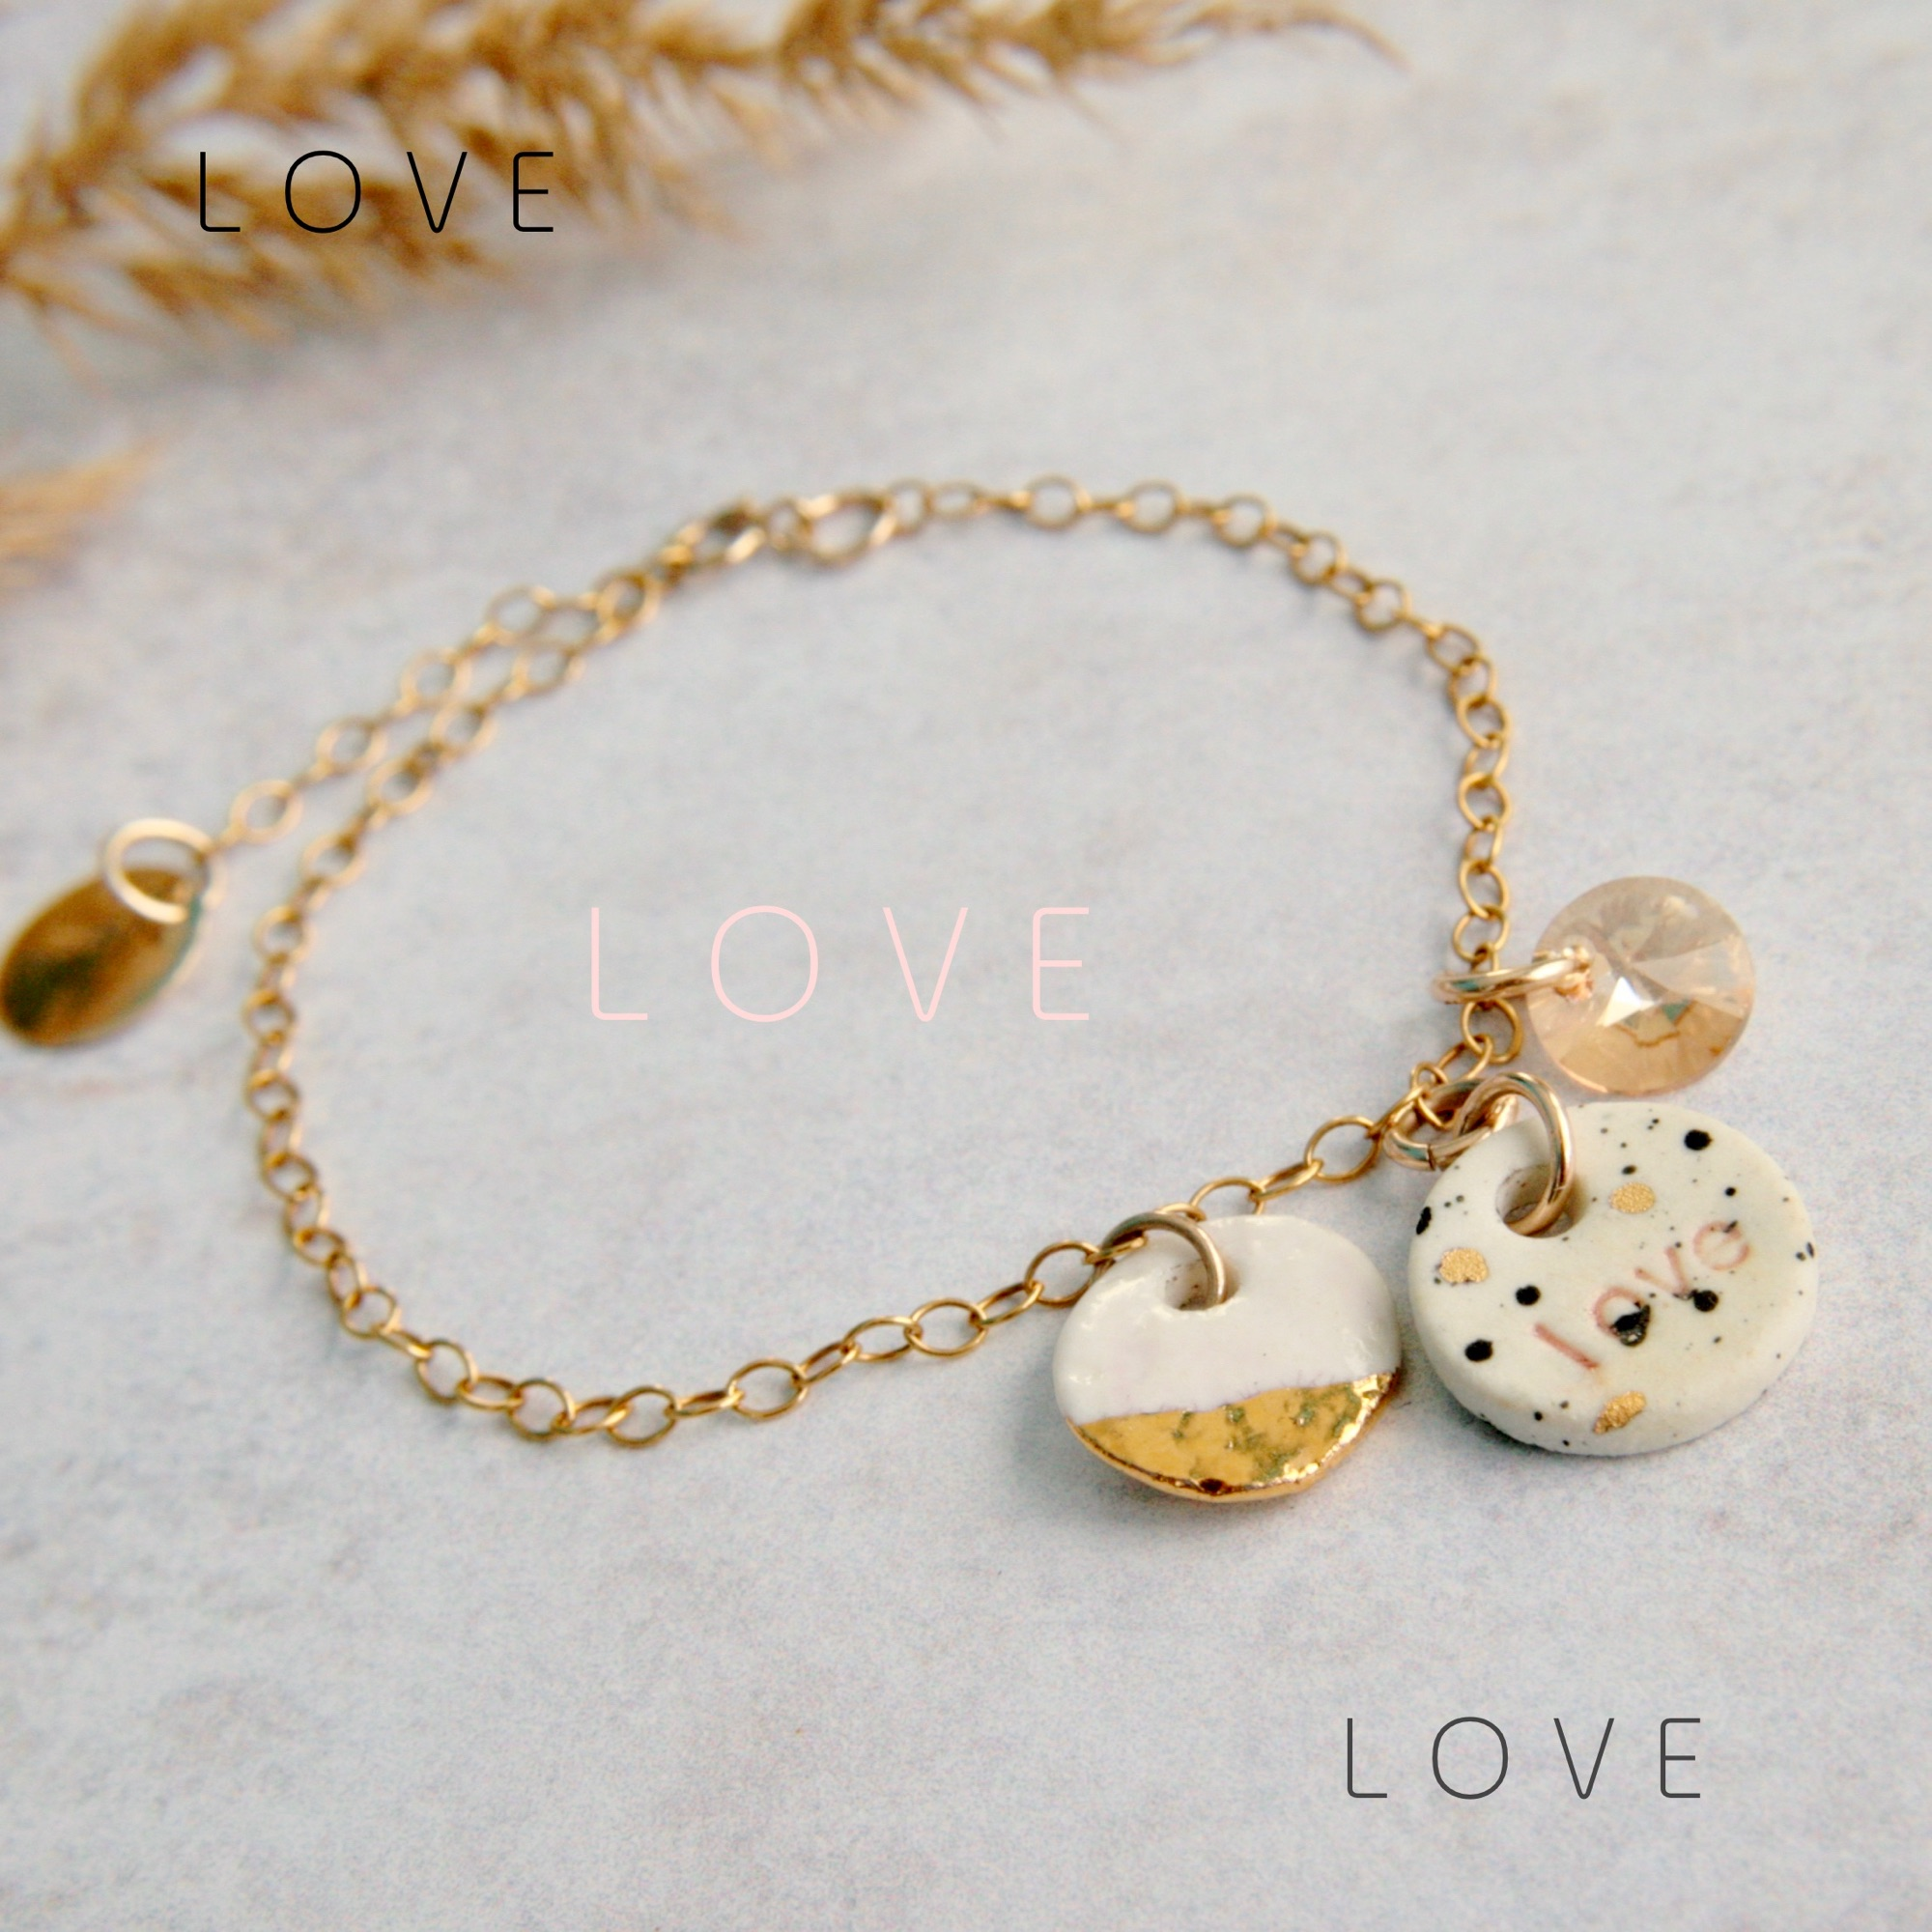 gold bracelet with  love charm